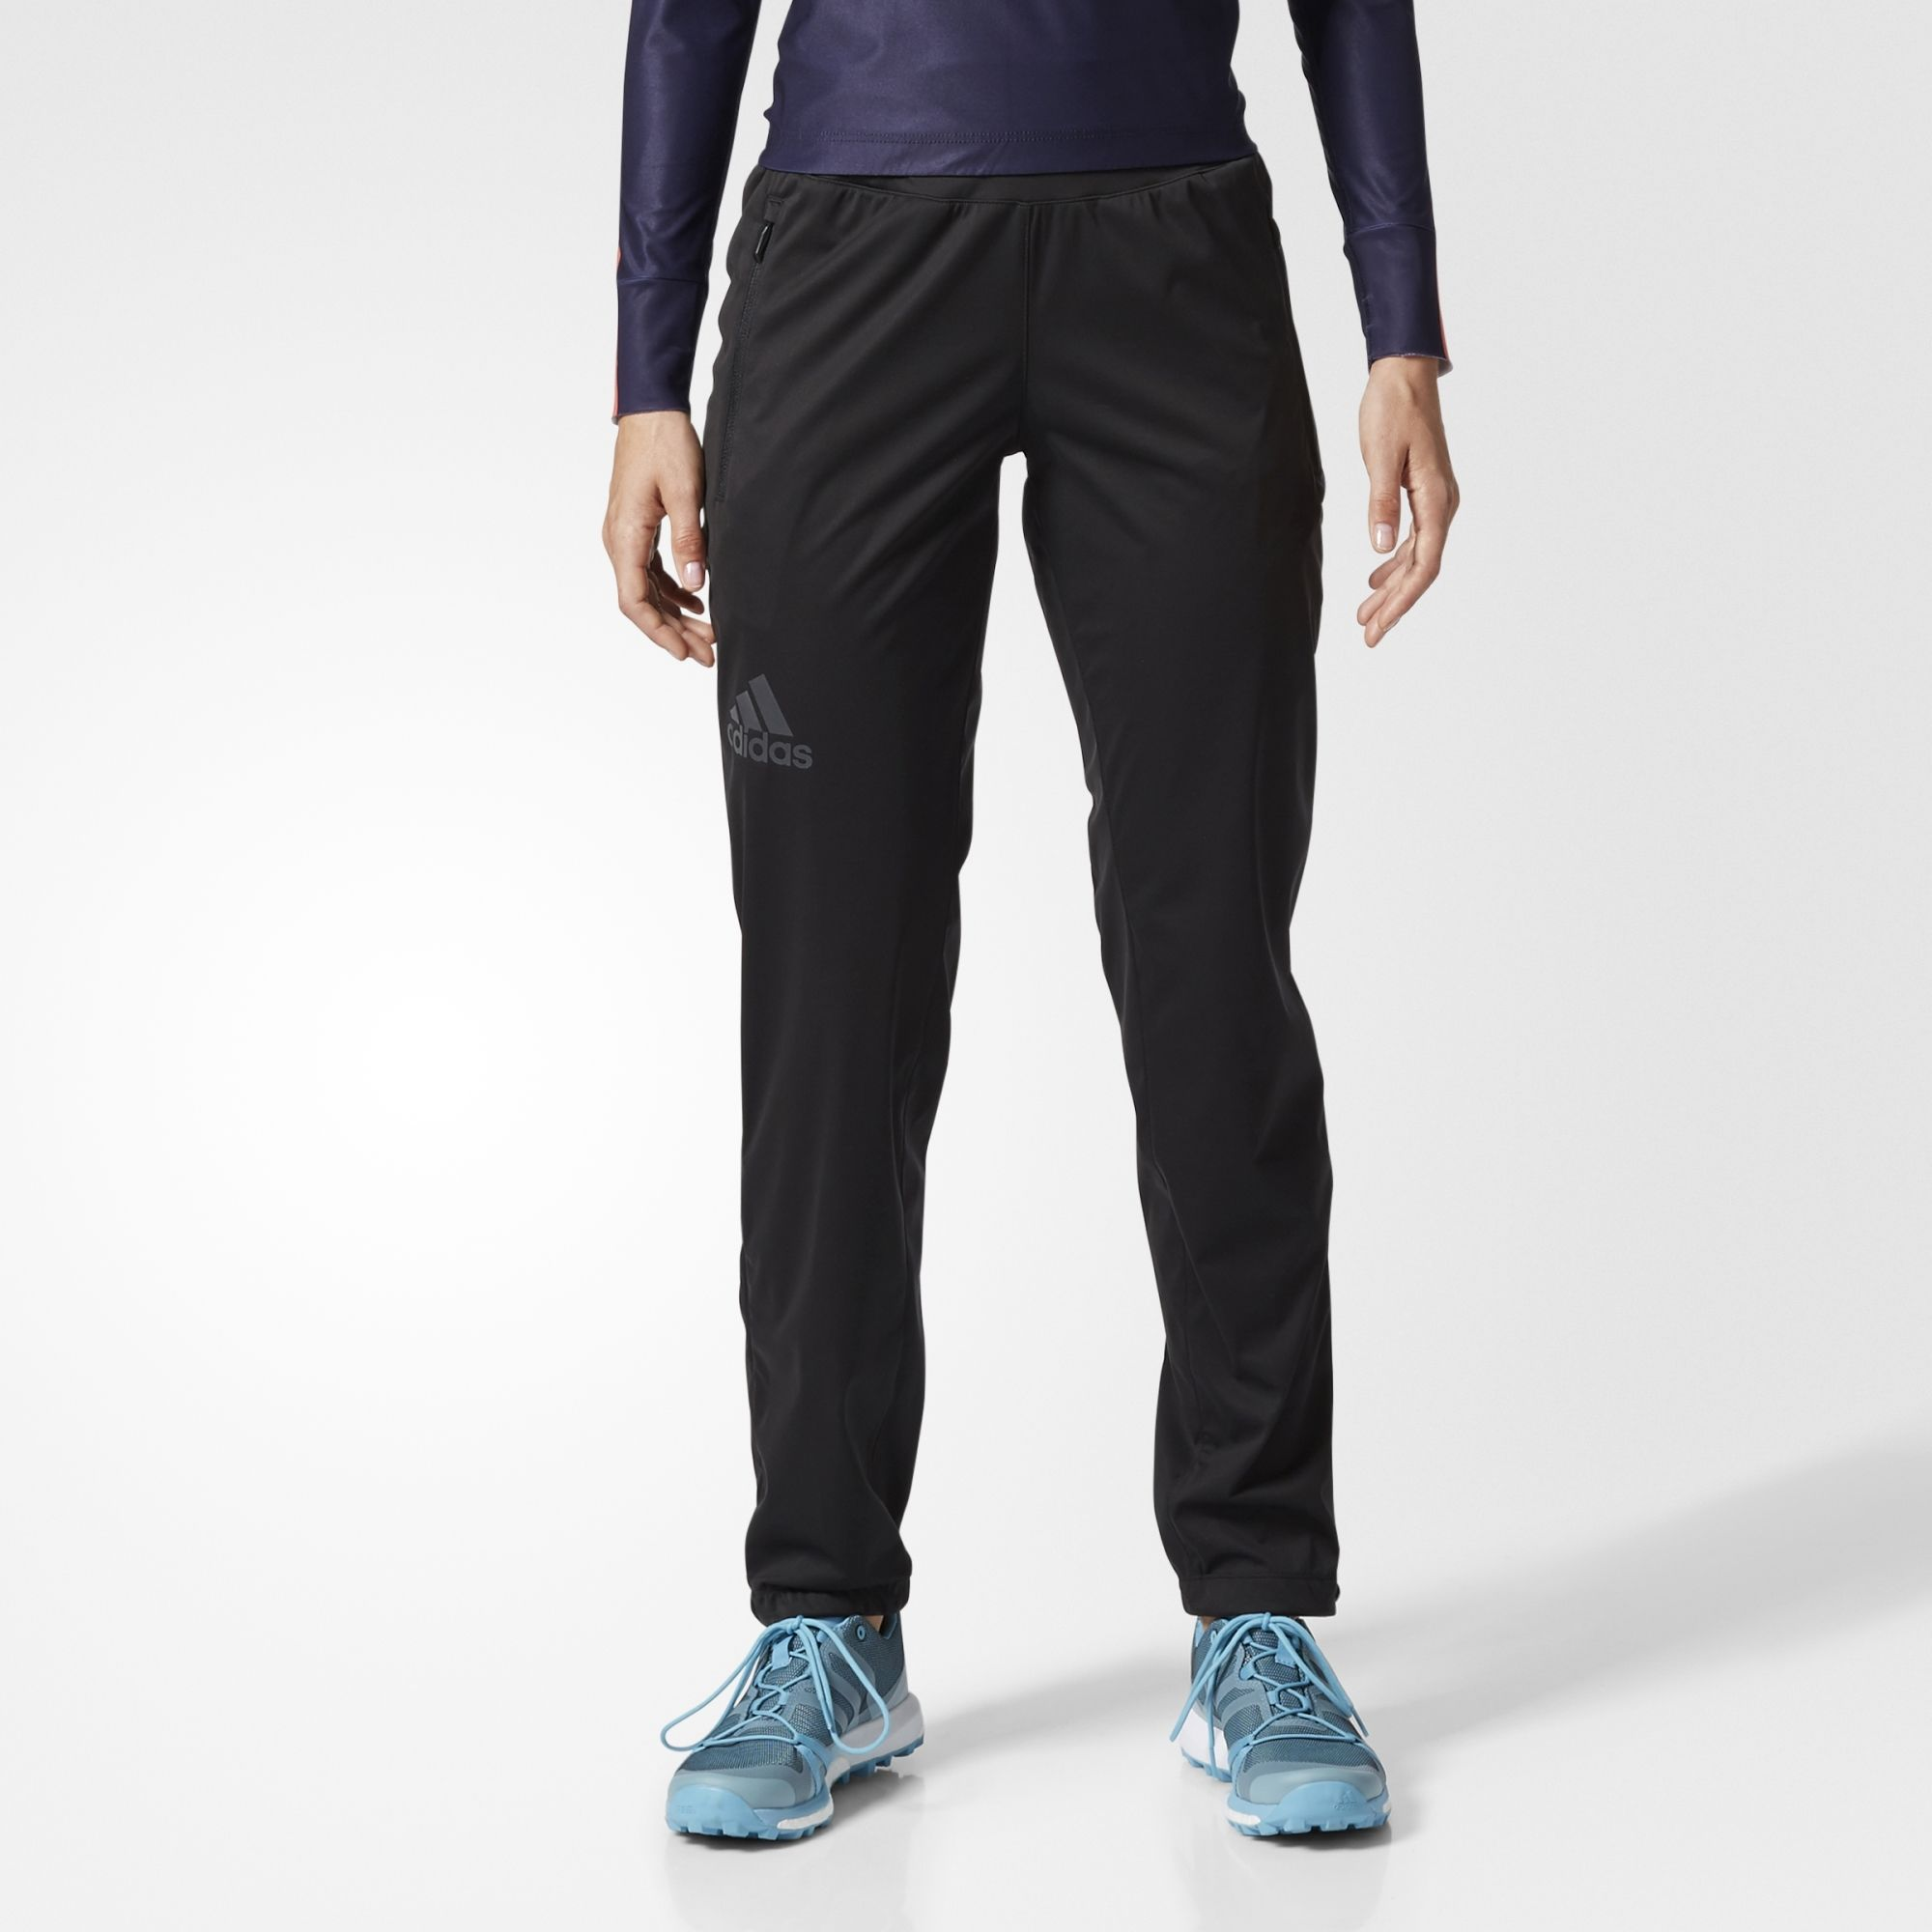 adidas Xperior Pants w in Schwarz